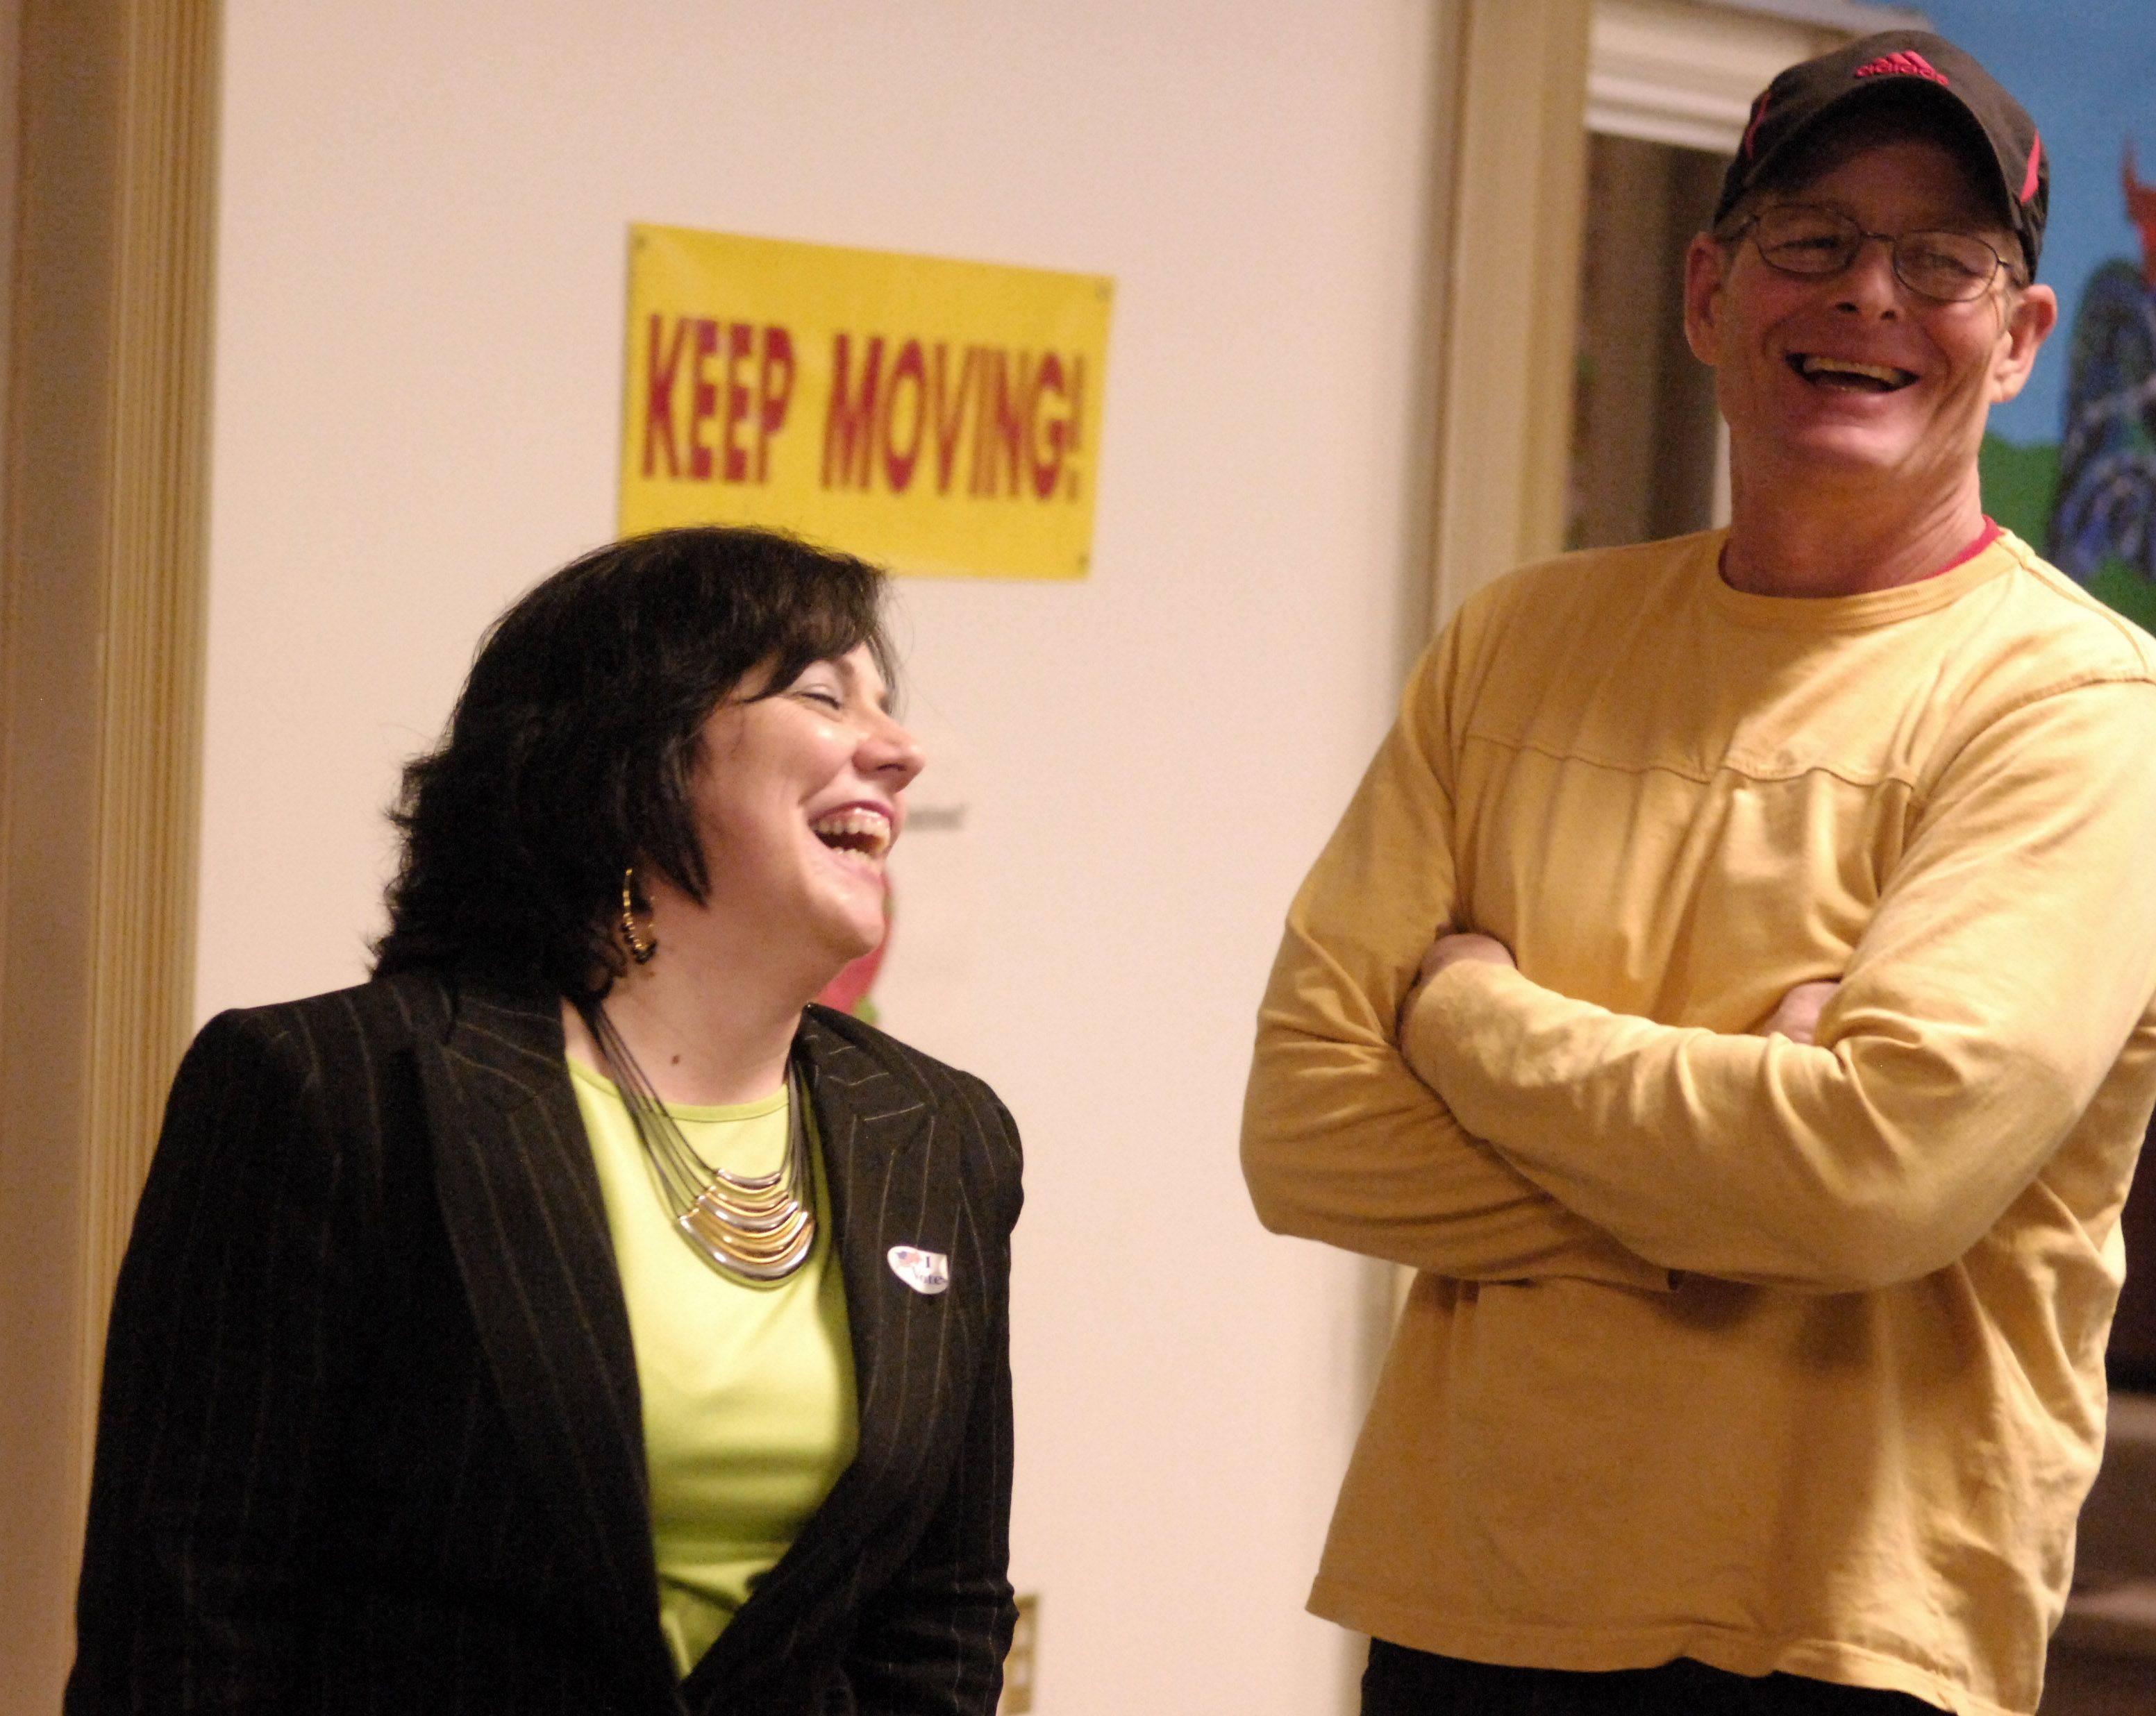 St. Charles 5th Ward candidate Kim Malay and husband Jim laugh about the final count showing her 2 votes down for the St. Charles city council race at Bridges Academy in St. Charles Tuesday.